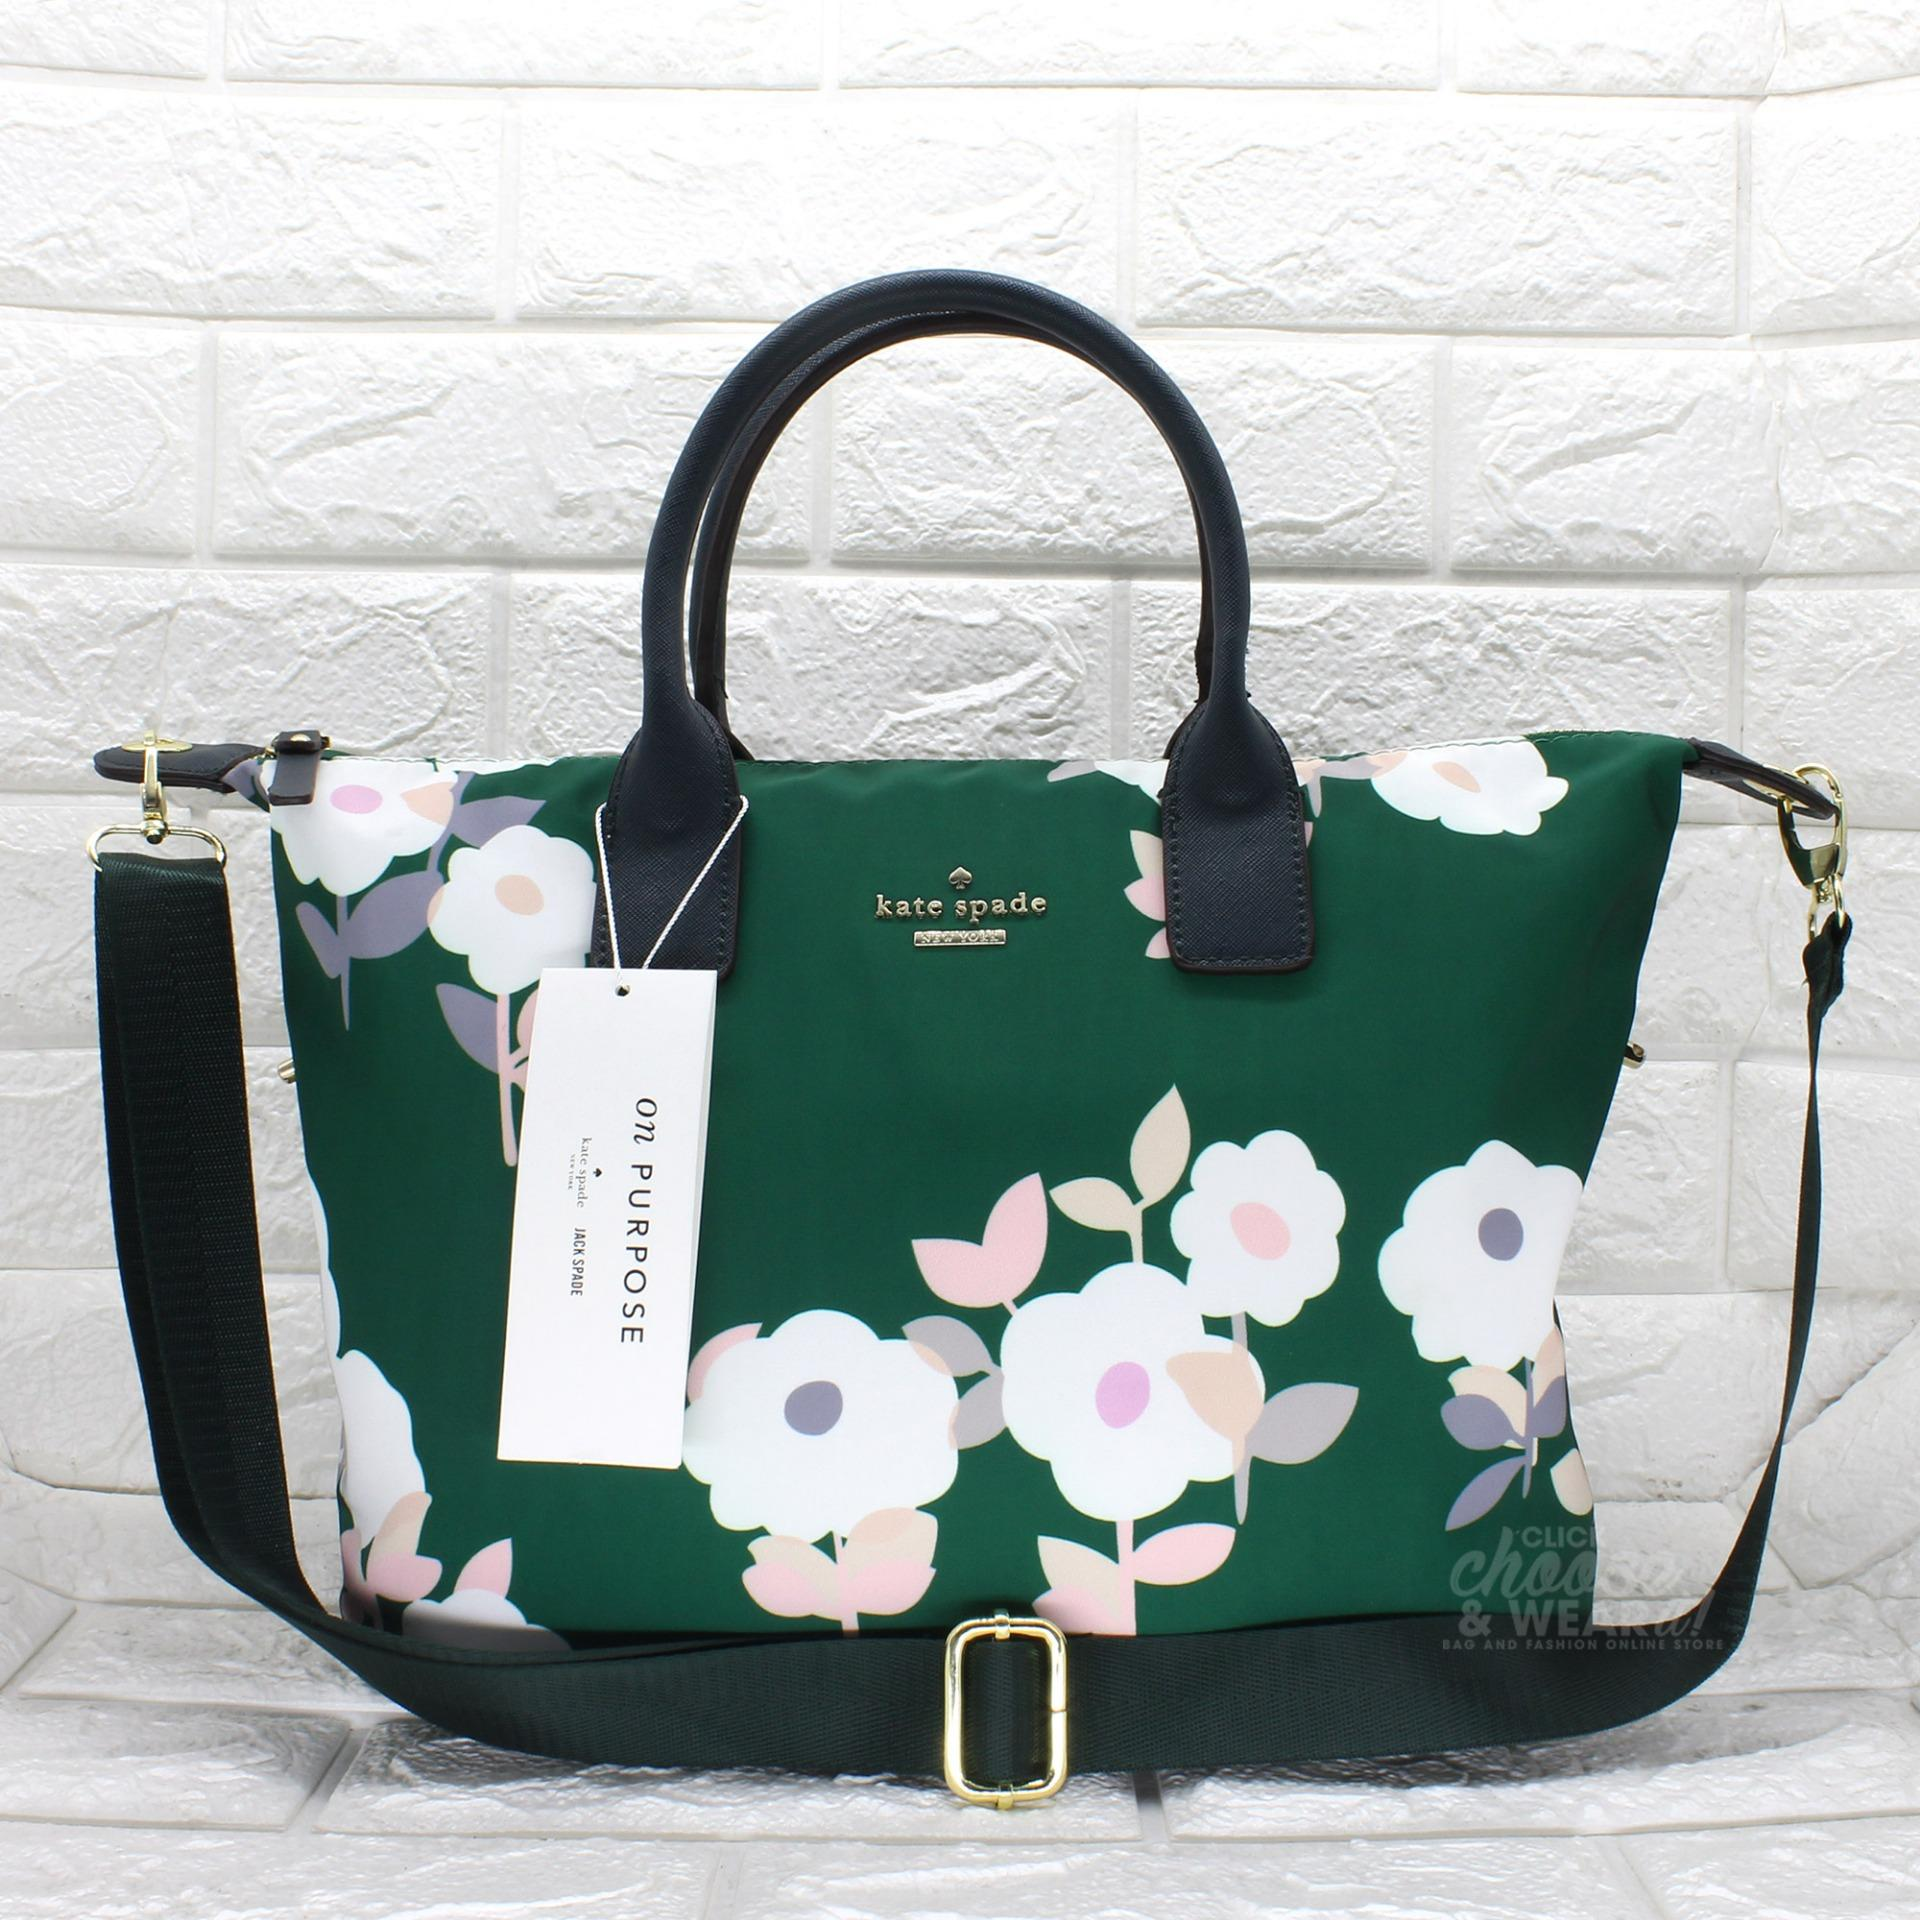 474f75b9e Authentic Kate Spade Tote Bag Classic Weekender Bag Lyla Rose Nylon with  Printed Flower - Green